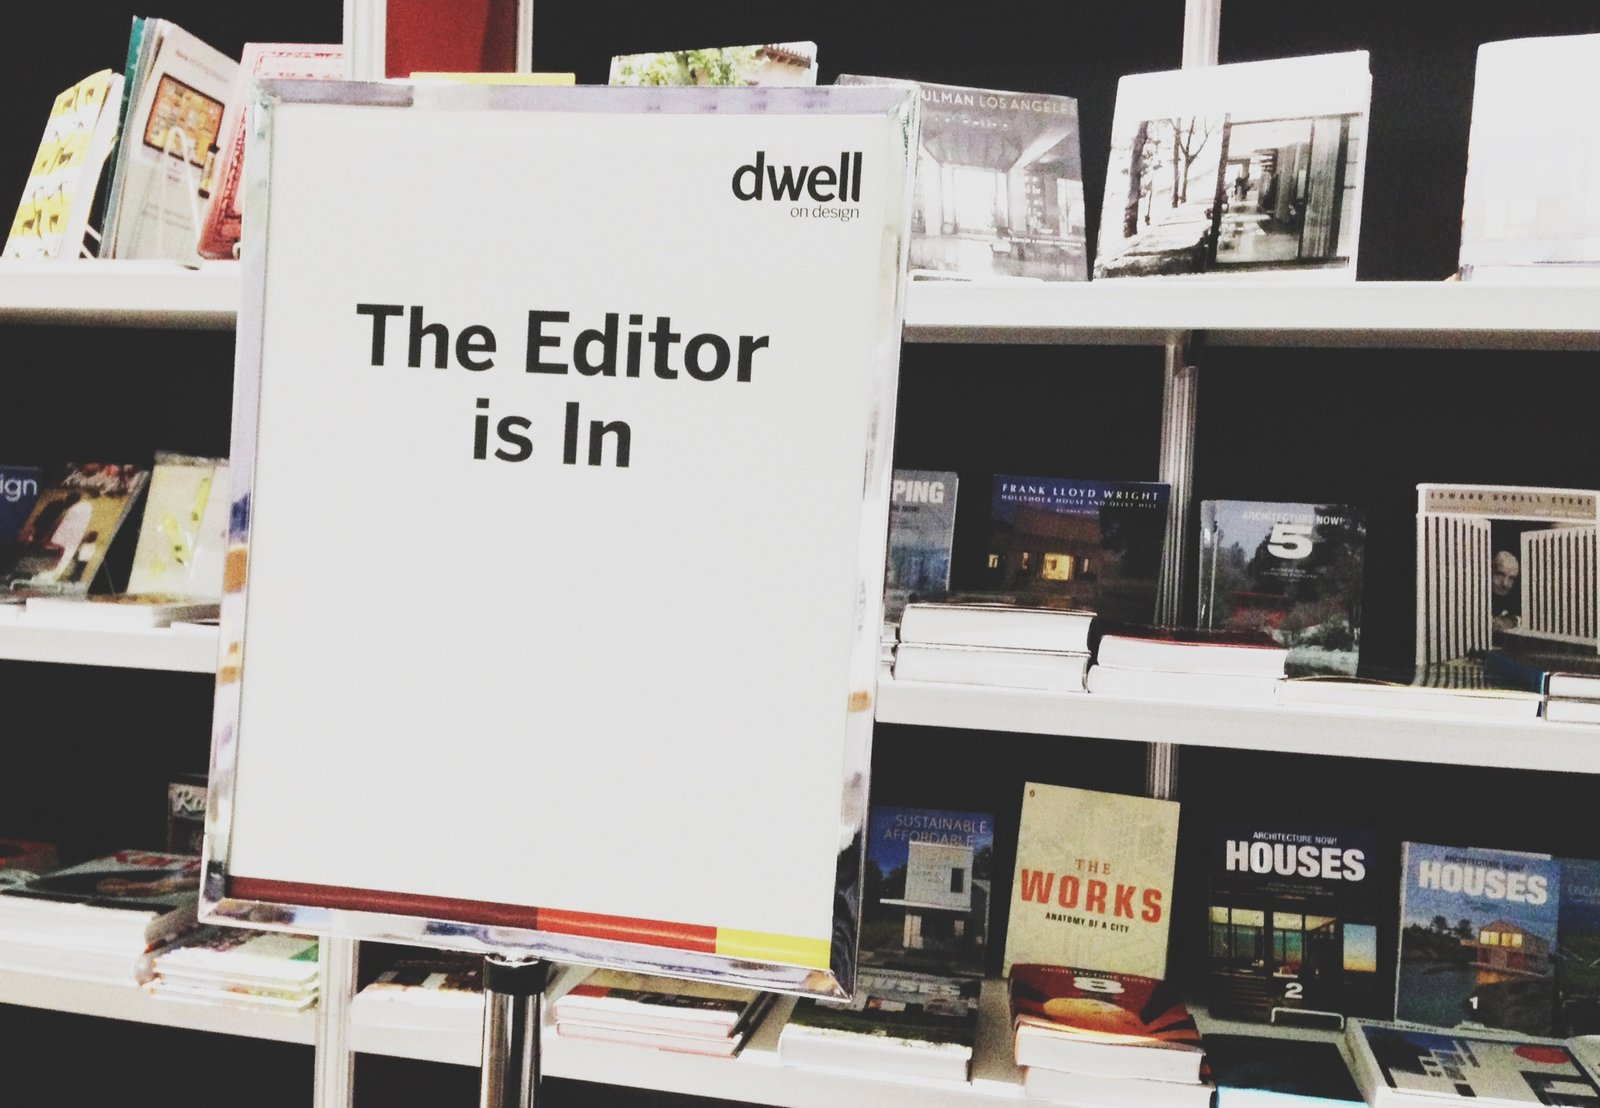 If you want to chat with a Dwell editor in person, stop by the Skylight Books booth at Dwell on Design between 1 and 3 pm on Sunday, June 23!  Photo 1 of 1 in The Editor Is In: 7 Tips for Pitching Stories to Dwell